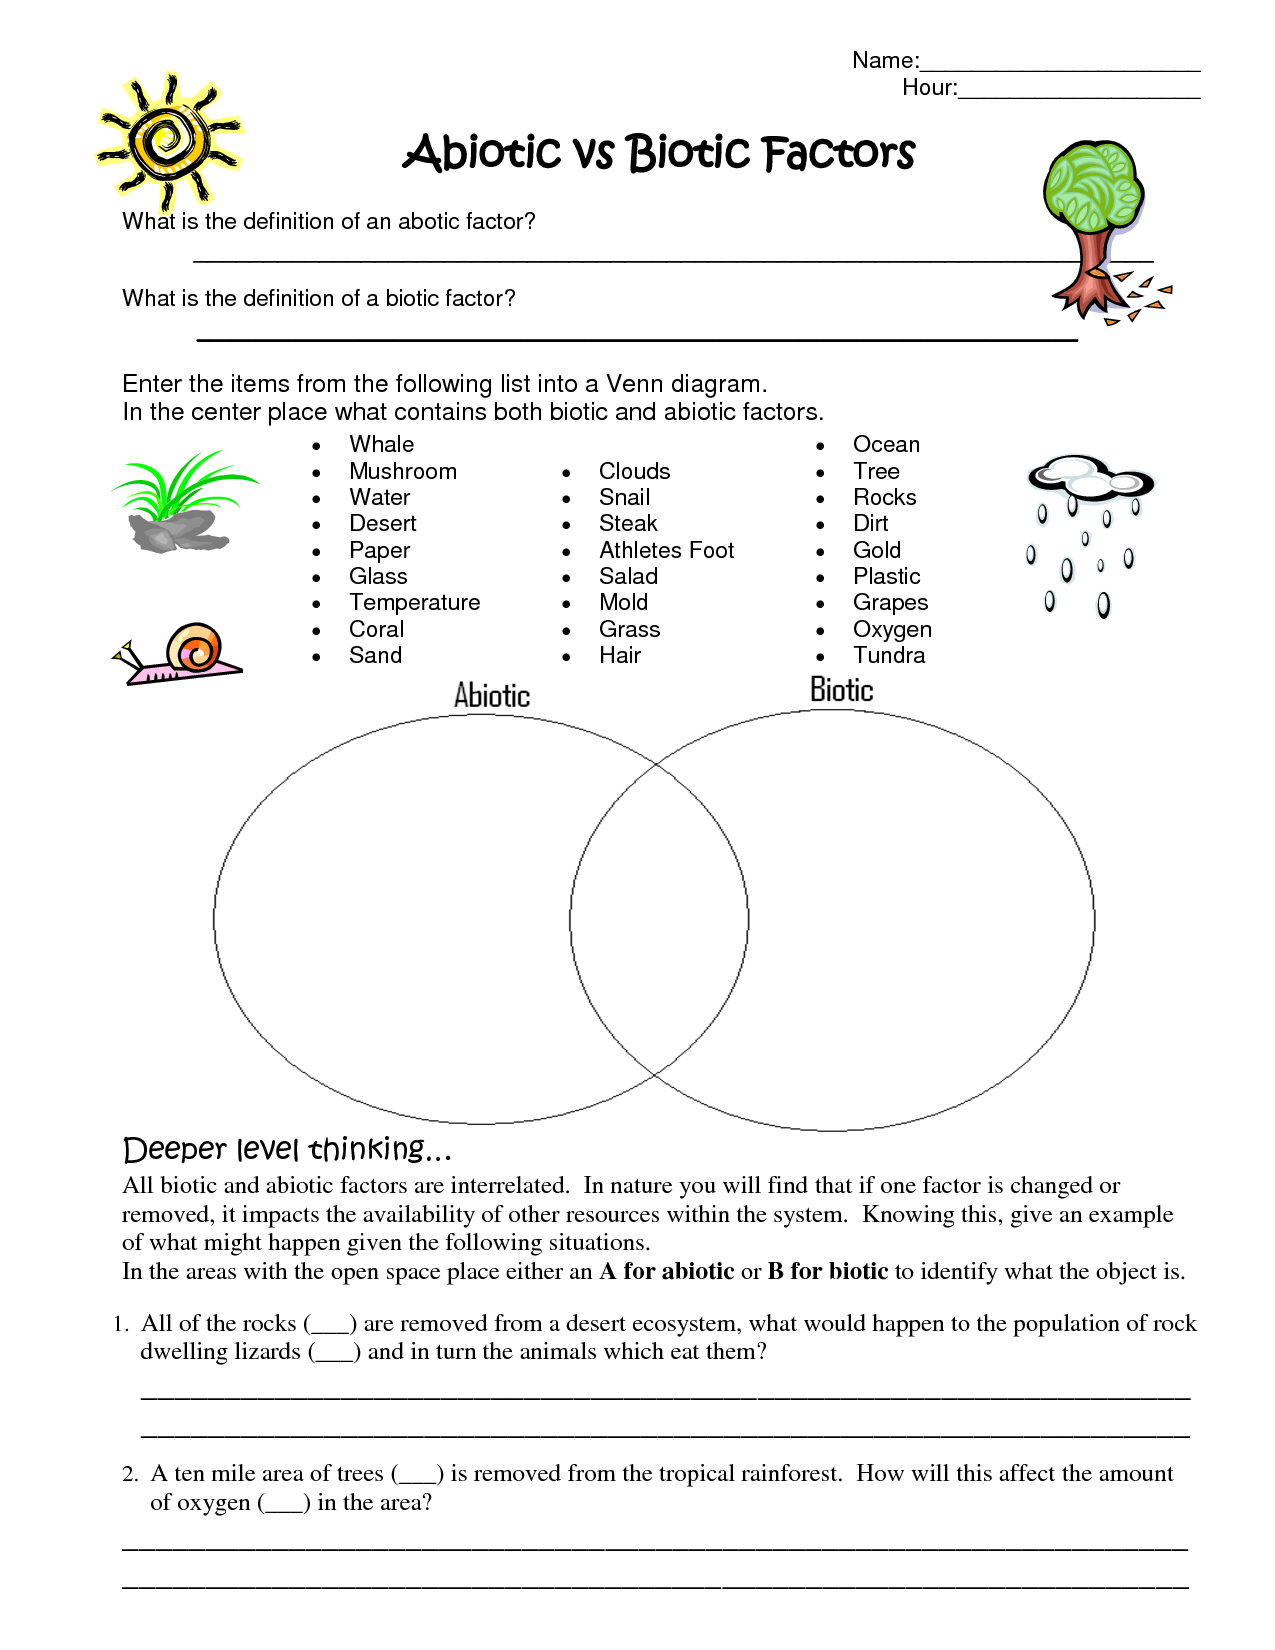 small resolution of Understanding Why Something Is Classified As Biotic Or Abiotic   Science  worksheets